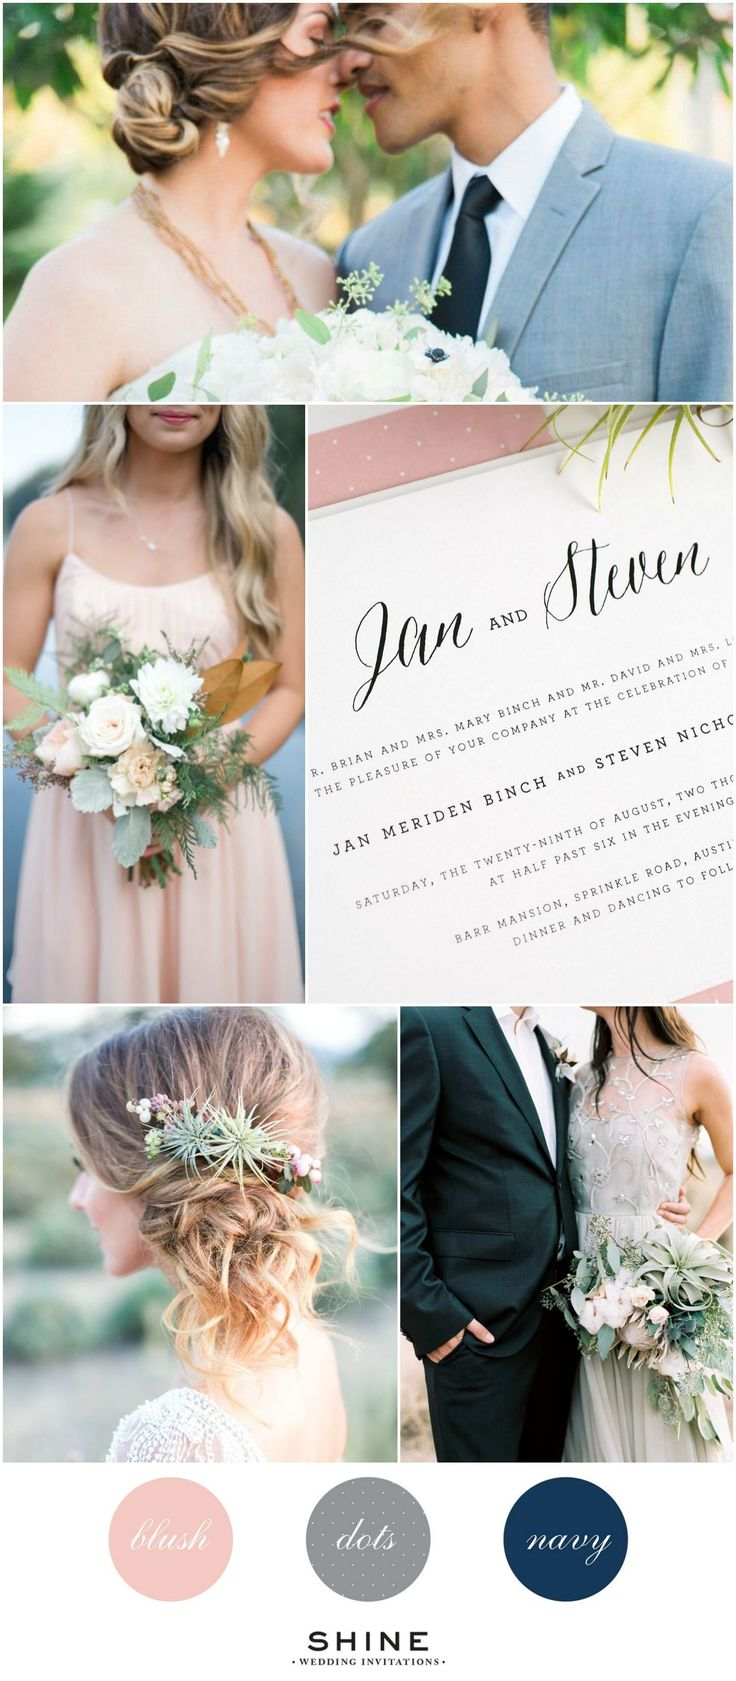 Rustic Romance Wedding Inspiration in blush, gray, and navy. Airplant flower crown, blush bridesmaids dress, succulent bouquet